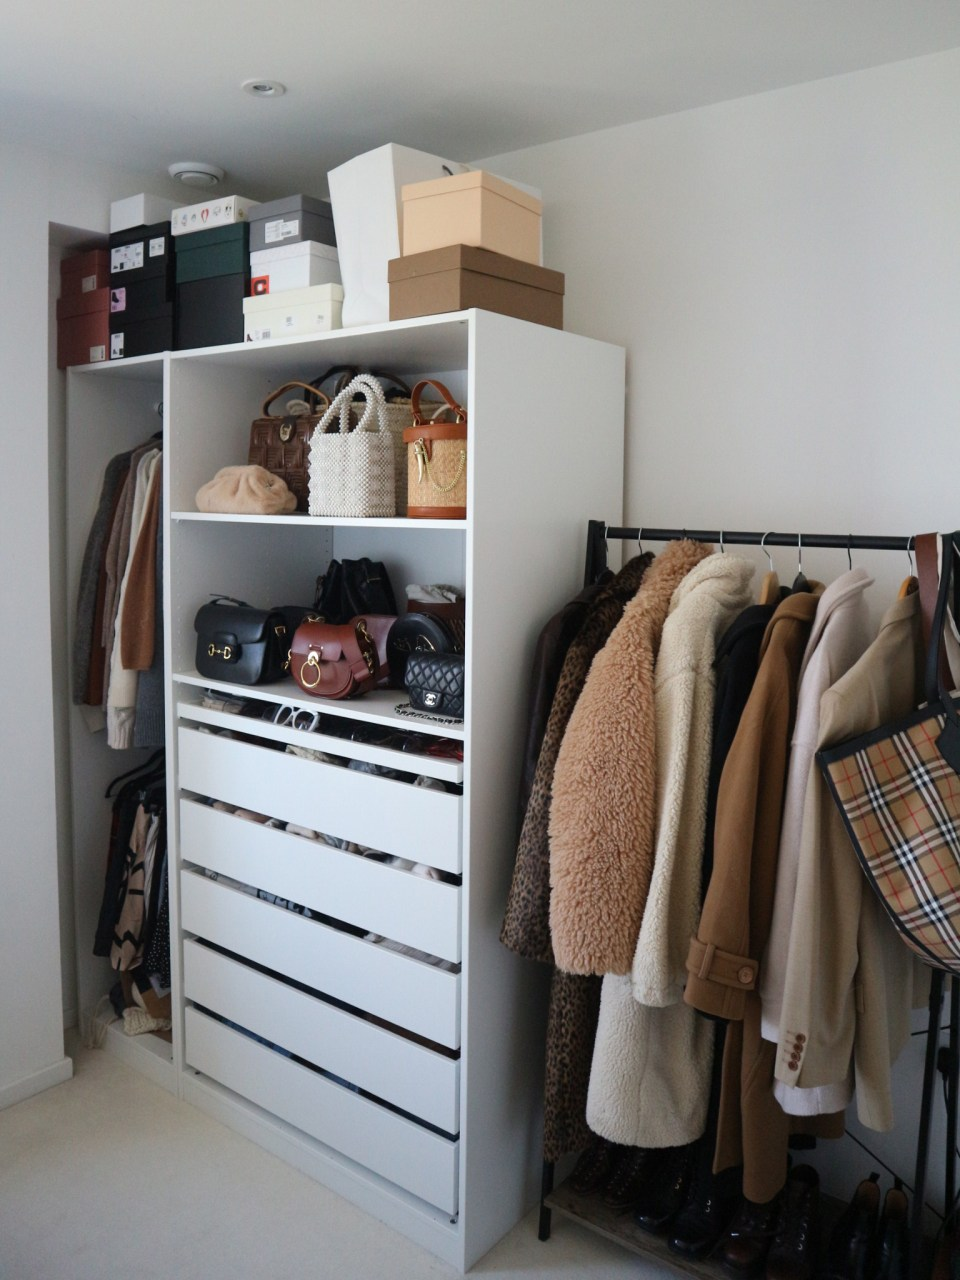 pax wardrobe with bags and clothing rail